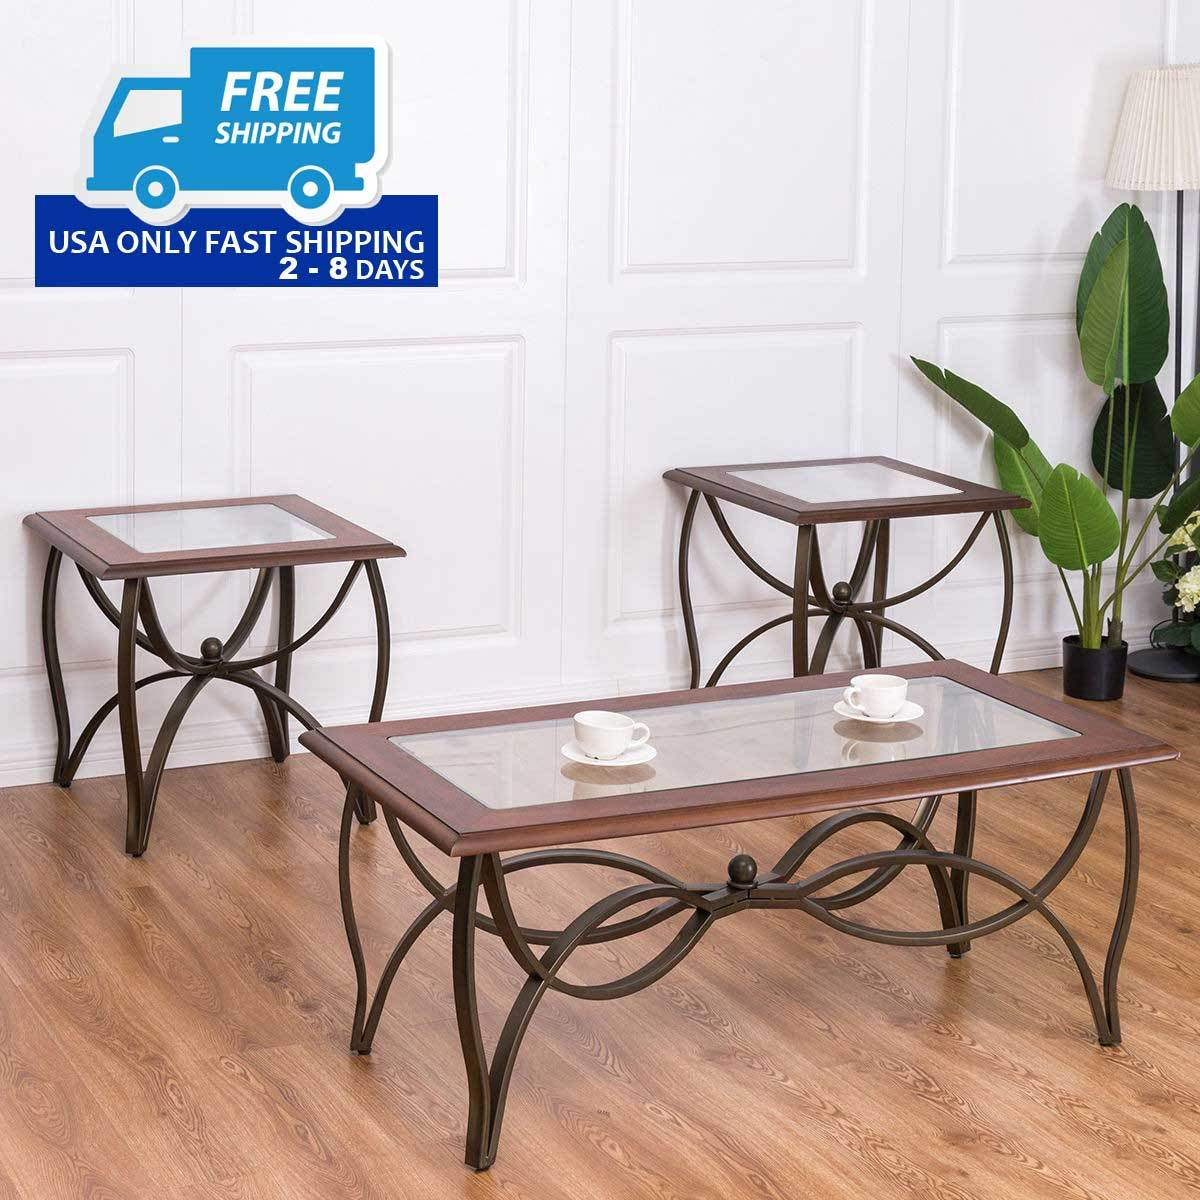 3 Pcs Elegant Wood Glass Coffee Table Set By Choice Products